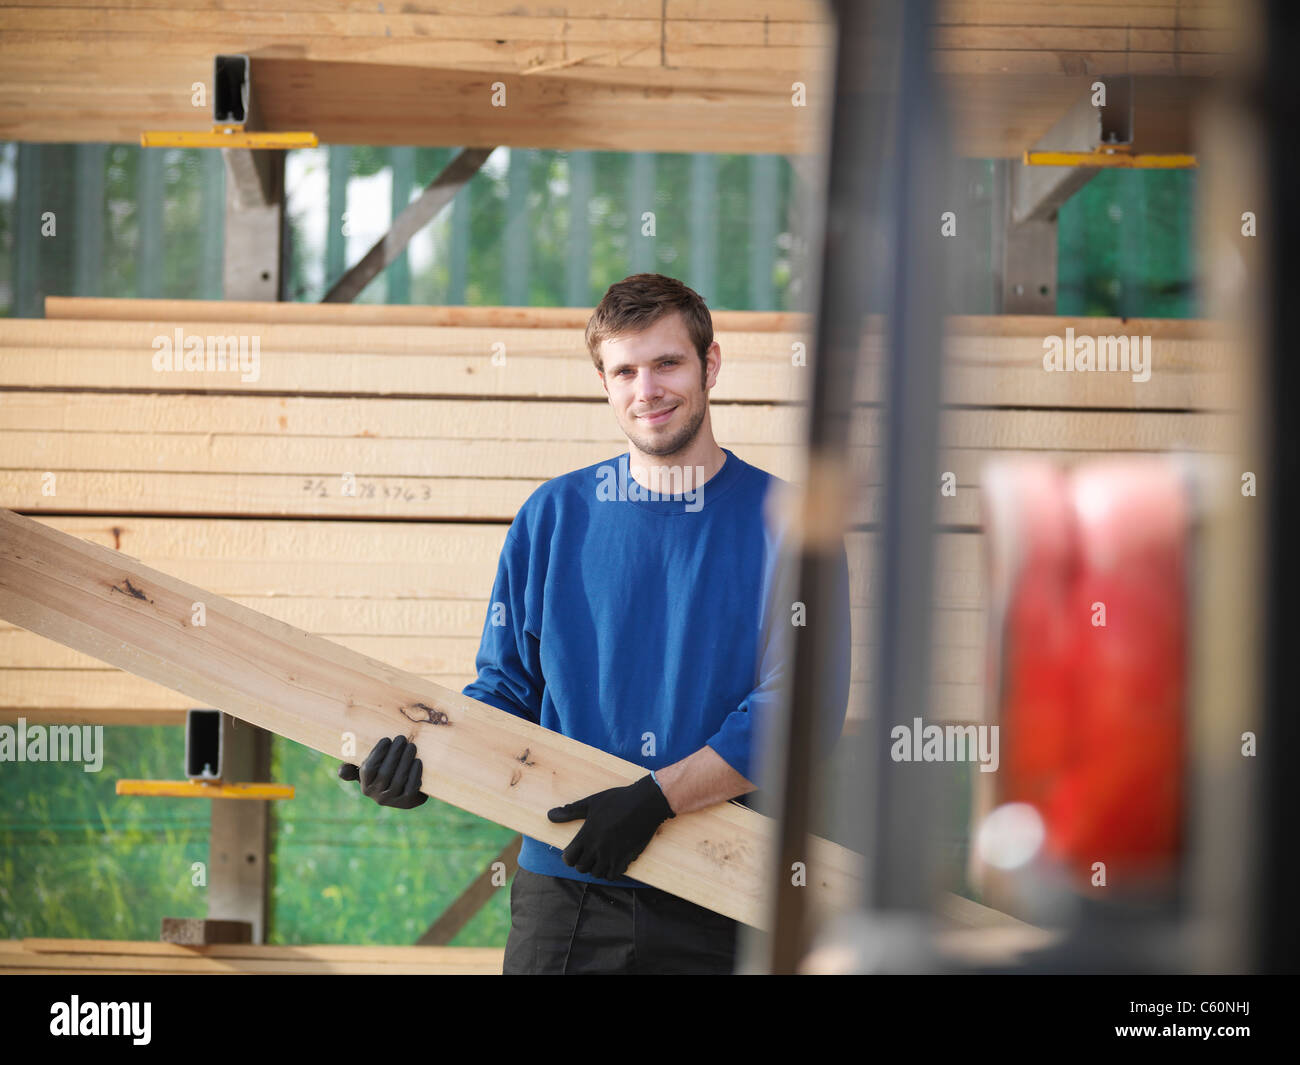 Worker holding planks of wood in joinery - Stock Image